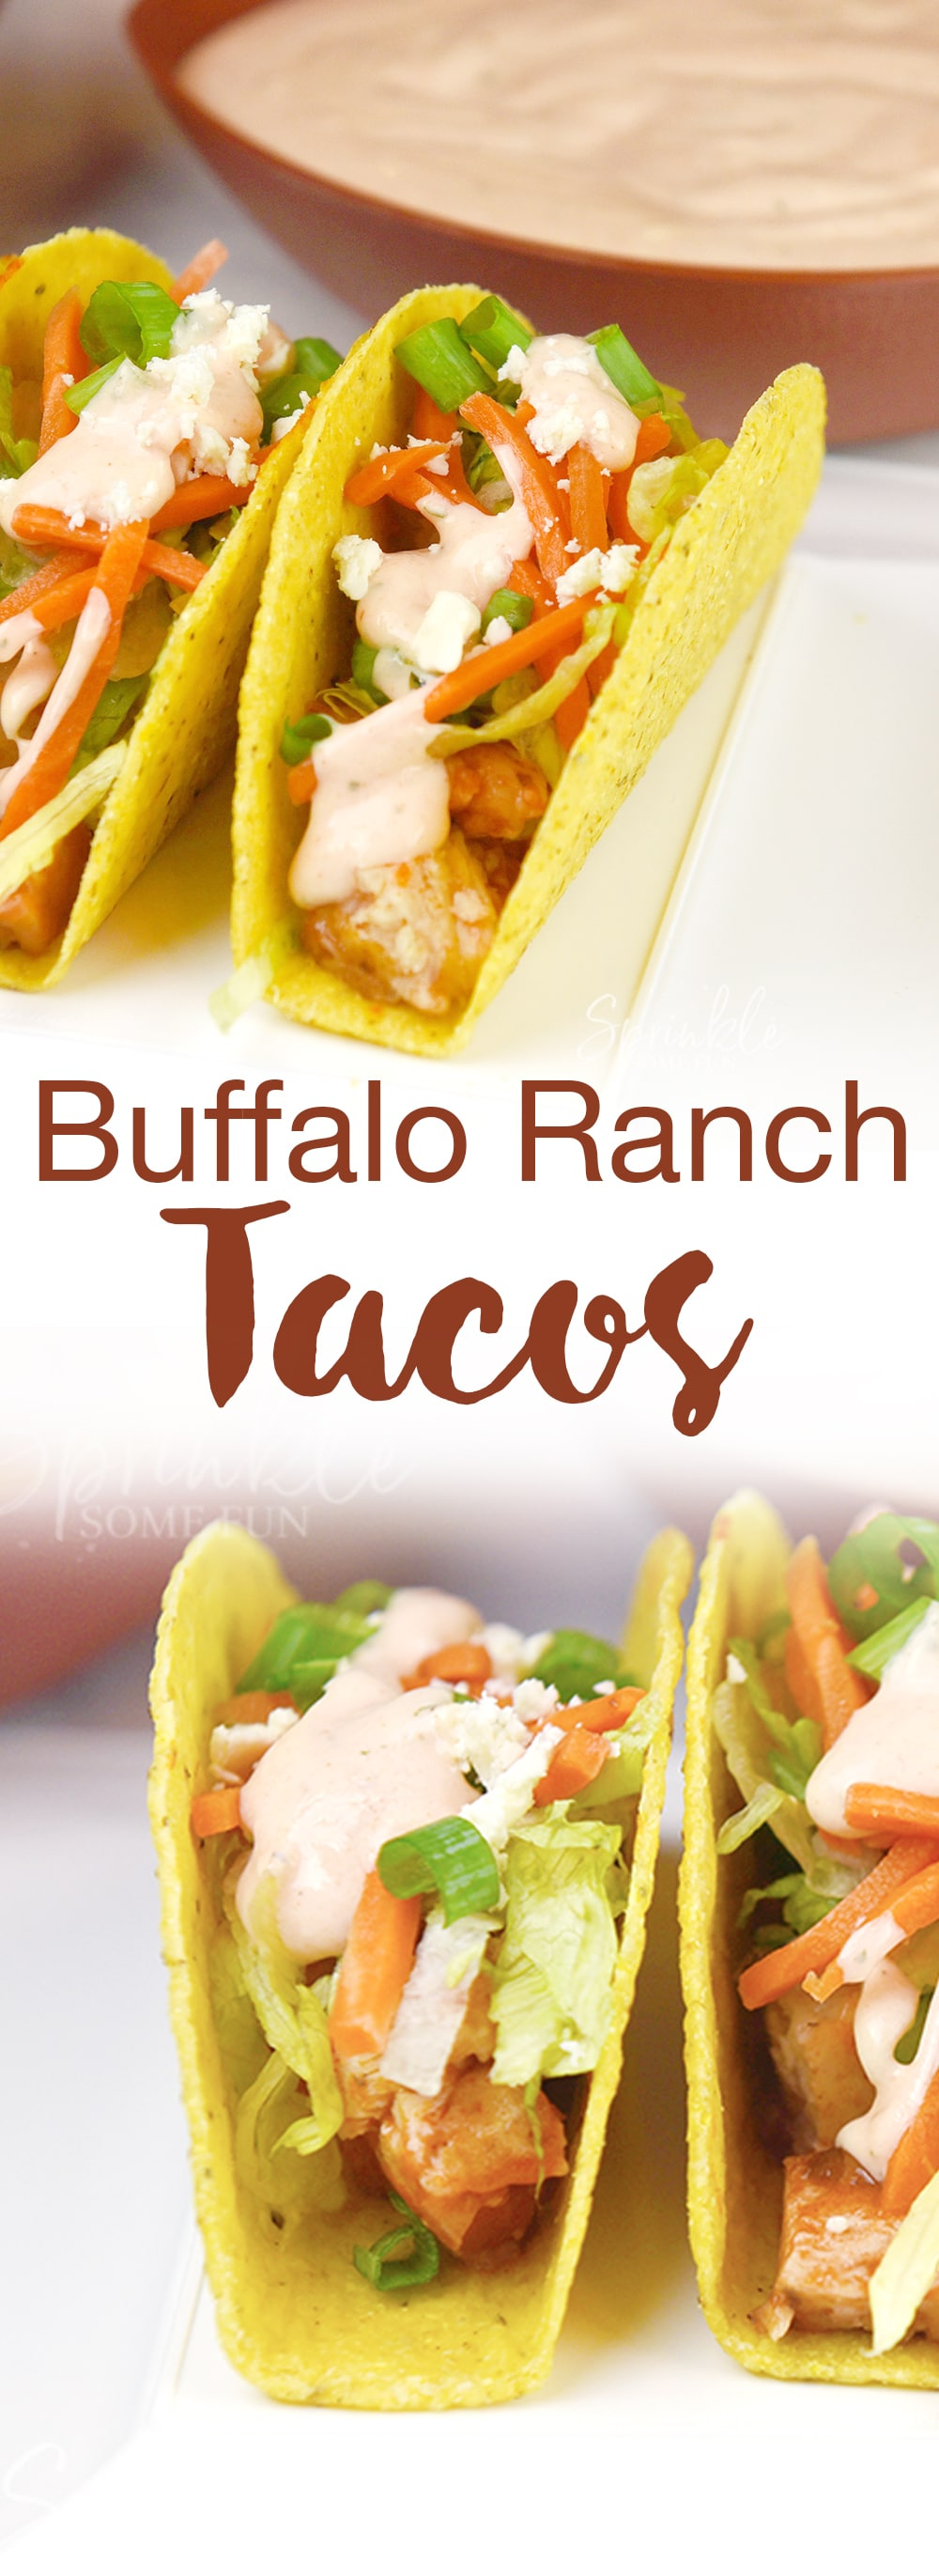 These Buffalo Ranch Chicken Tacos are inspired by Buffalo chicken wings.  The ranch gives a little coolness to the spicy hot sauce and the Old El Paso Stand 'n Stuff Taco Shells make it so easy to fill them up.